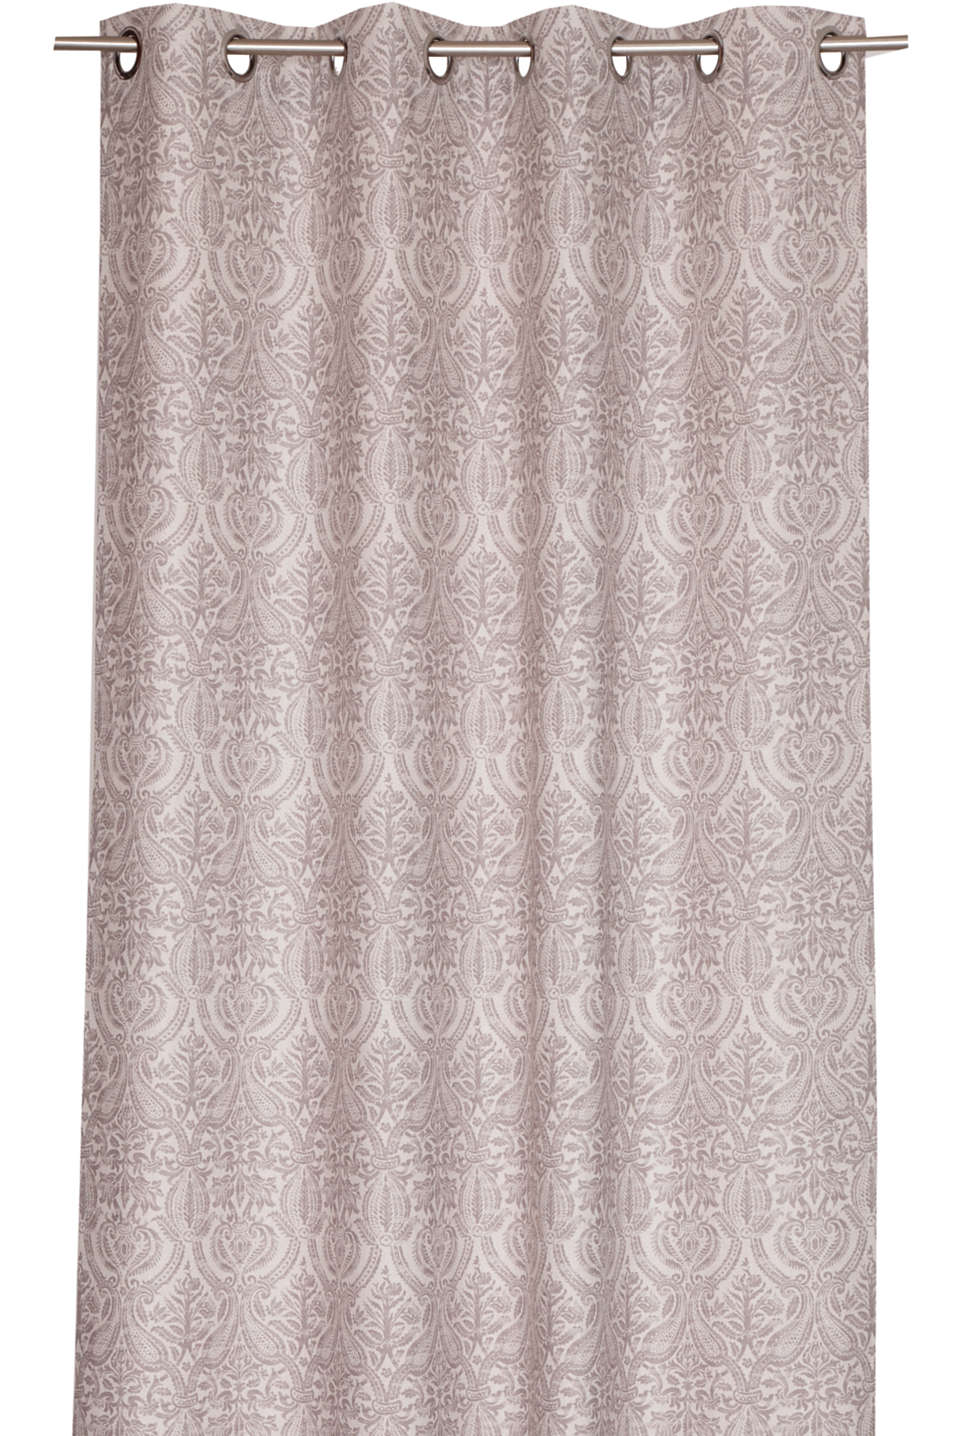 Esprit - Eyelet top curtains